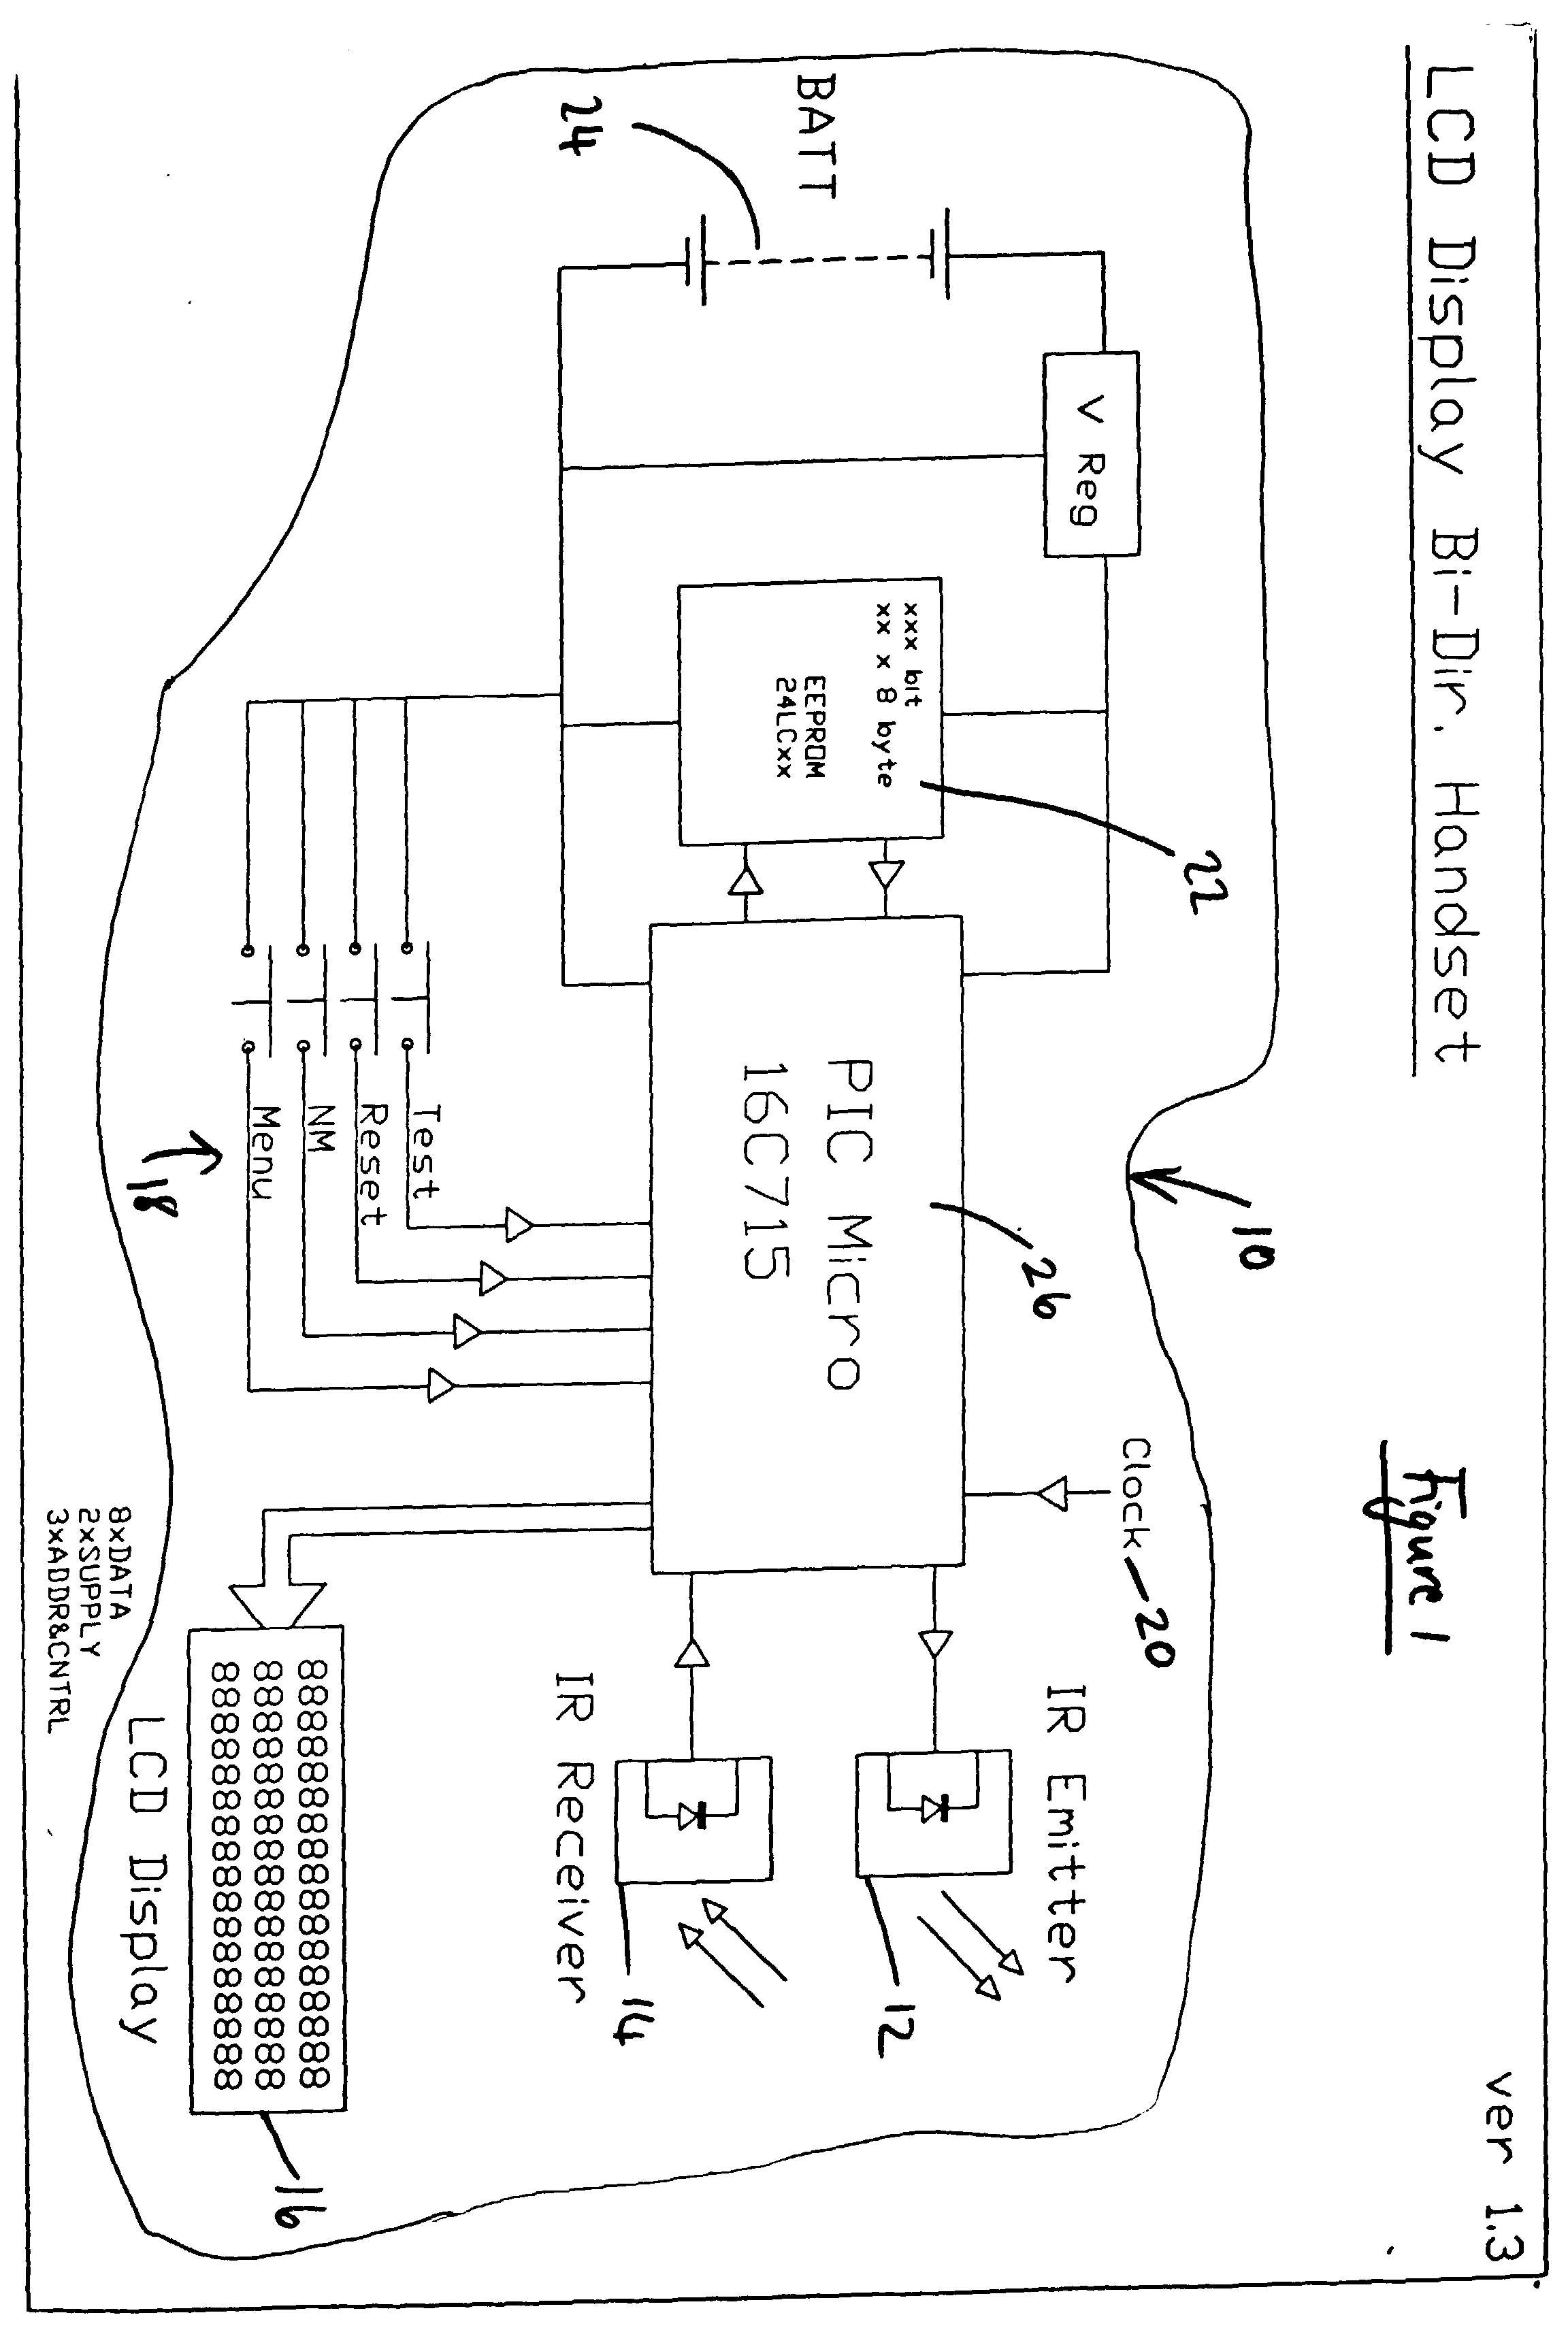 00160001 patent ep1035628a1 improvements relating to emergency lighting emergency exit light wiring diagram at fashall.co